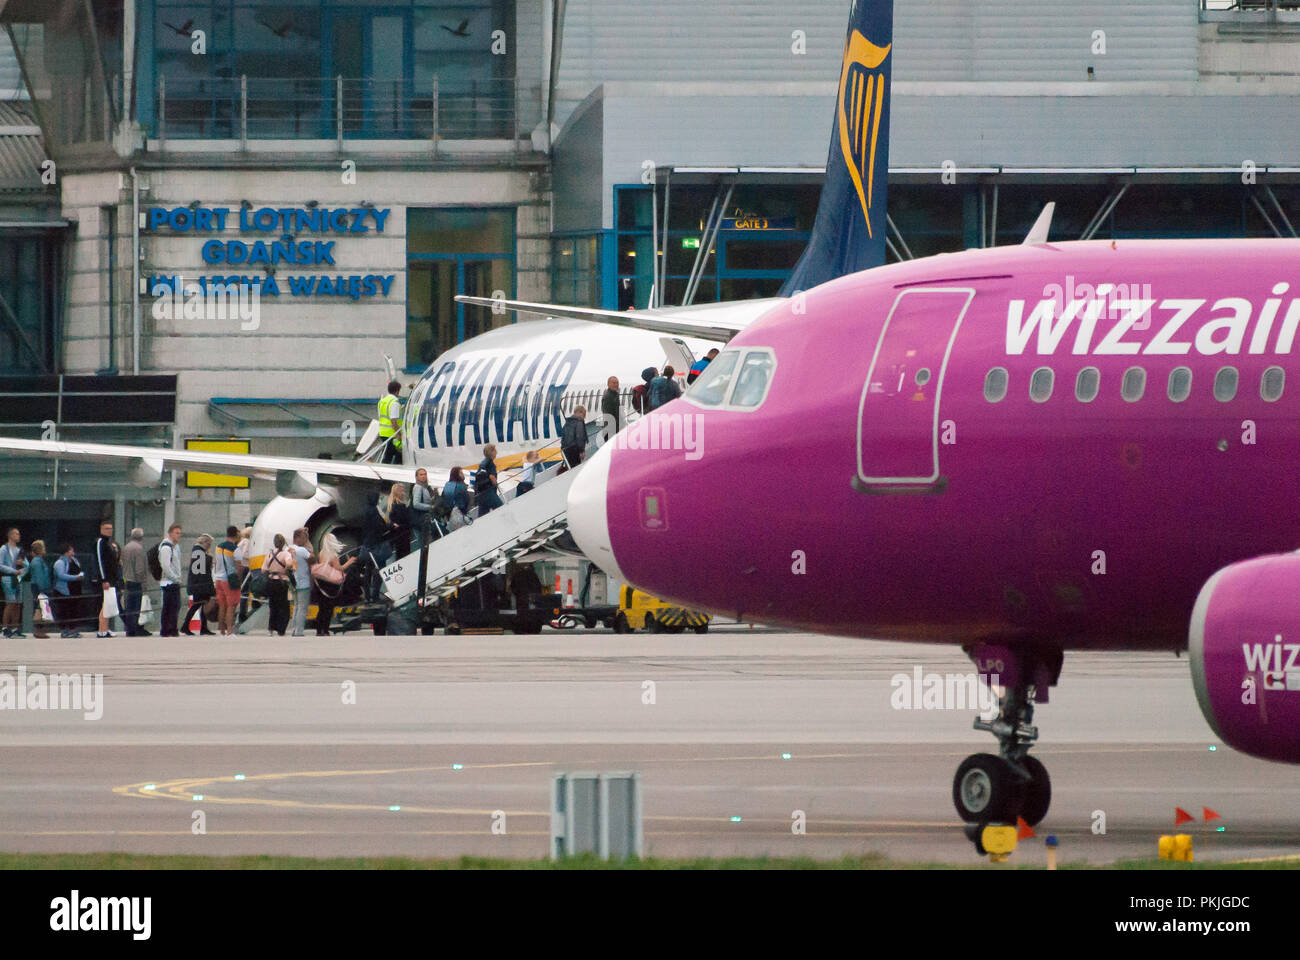 Low cost airline Ryanair aircraft Boeing 737-800 and low cost airline Wizz Air Airbus A320-200 in Gdansk Lech Walesa Airport in Gdansk, Poland. Septem - Stock Image